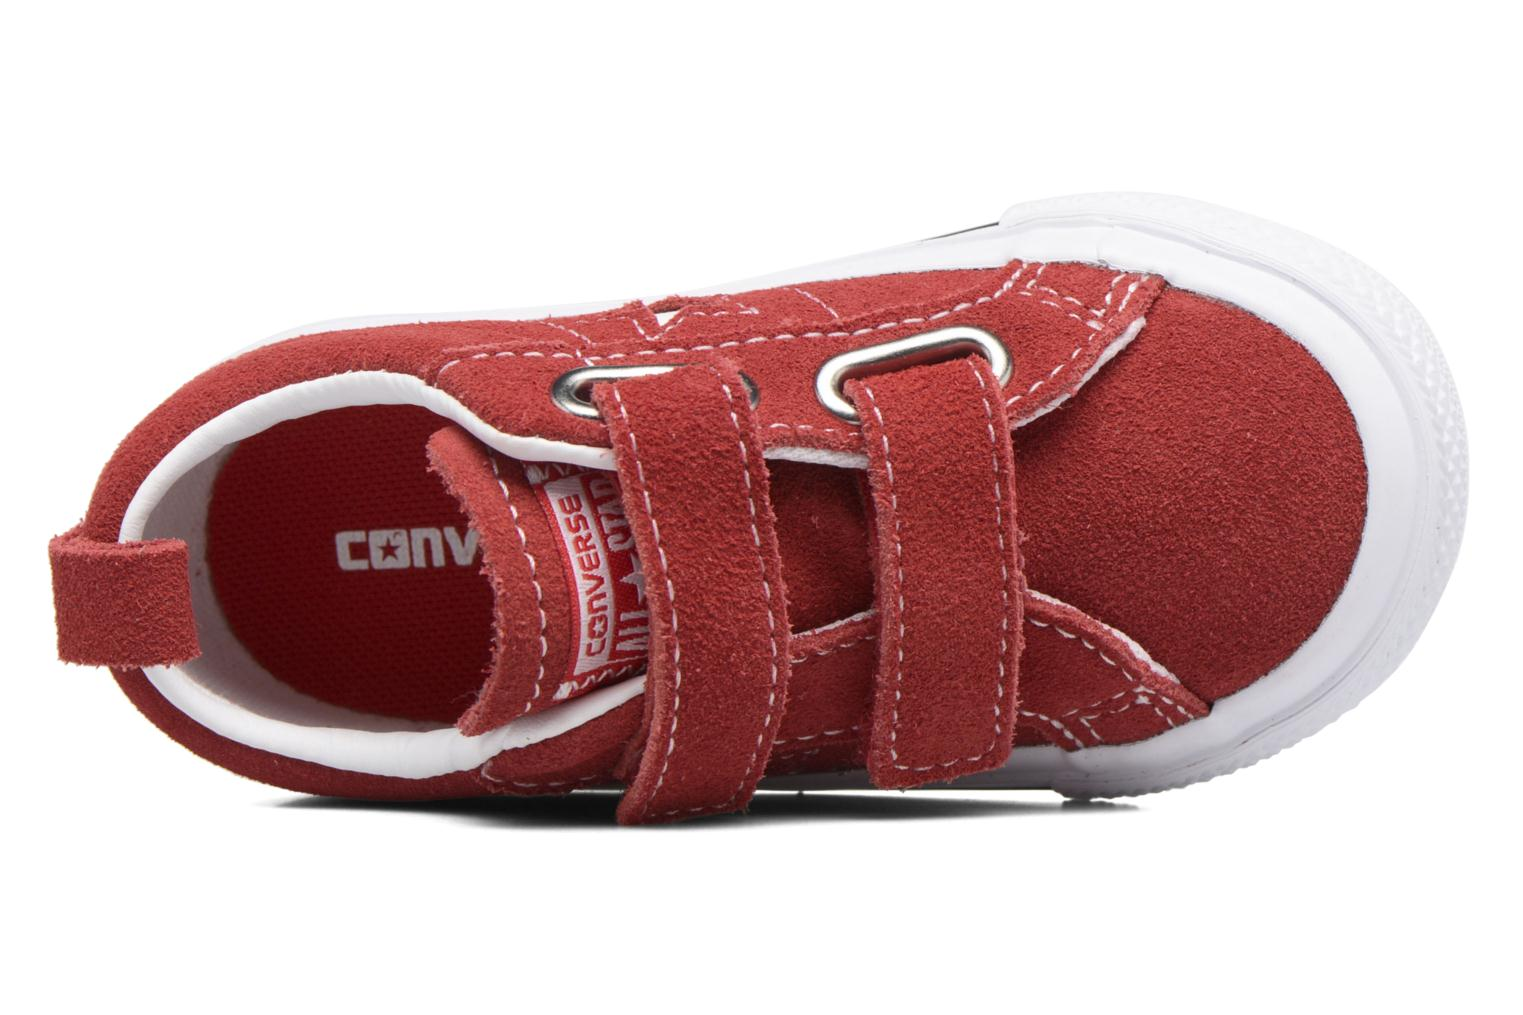 Converse One Star 2V Ox Red/White/Black